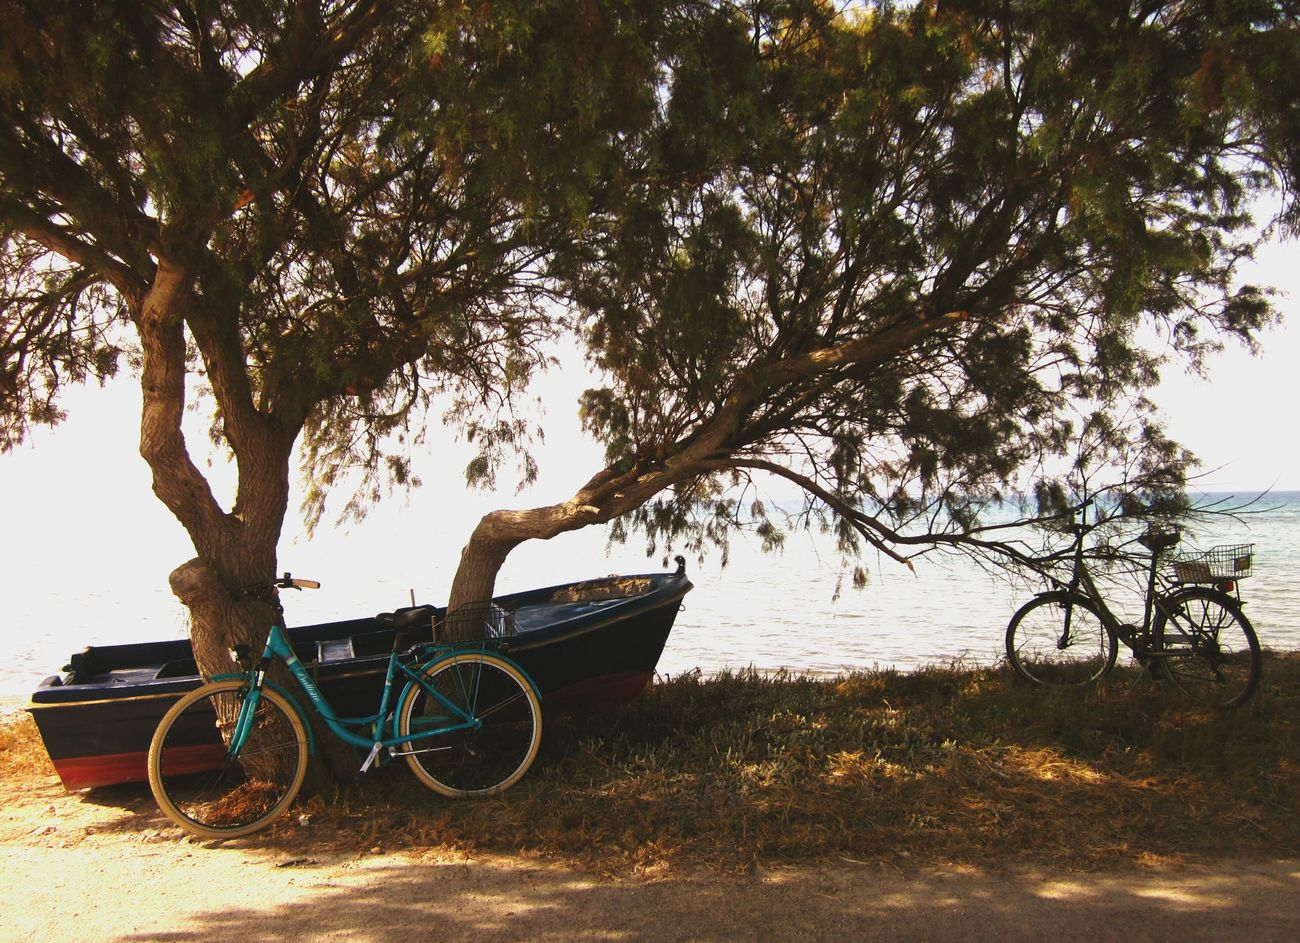 🇬🇷 CyclingUnites The Calmness Within The Color Of Sport Bike Tour Bicycle Trip Have A Break By The Sea Seascape Seaside Along The Coastline Beach View Kos, Greece Tigaki Greek Summer Interrail2016 Bicycle Huge Tree Great Tree Shadows And Sunlight Summer Vibes Eyeem Photography Landscape_Collection